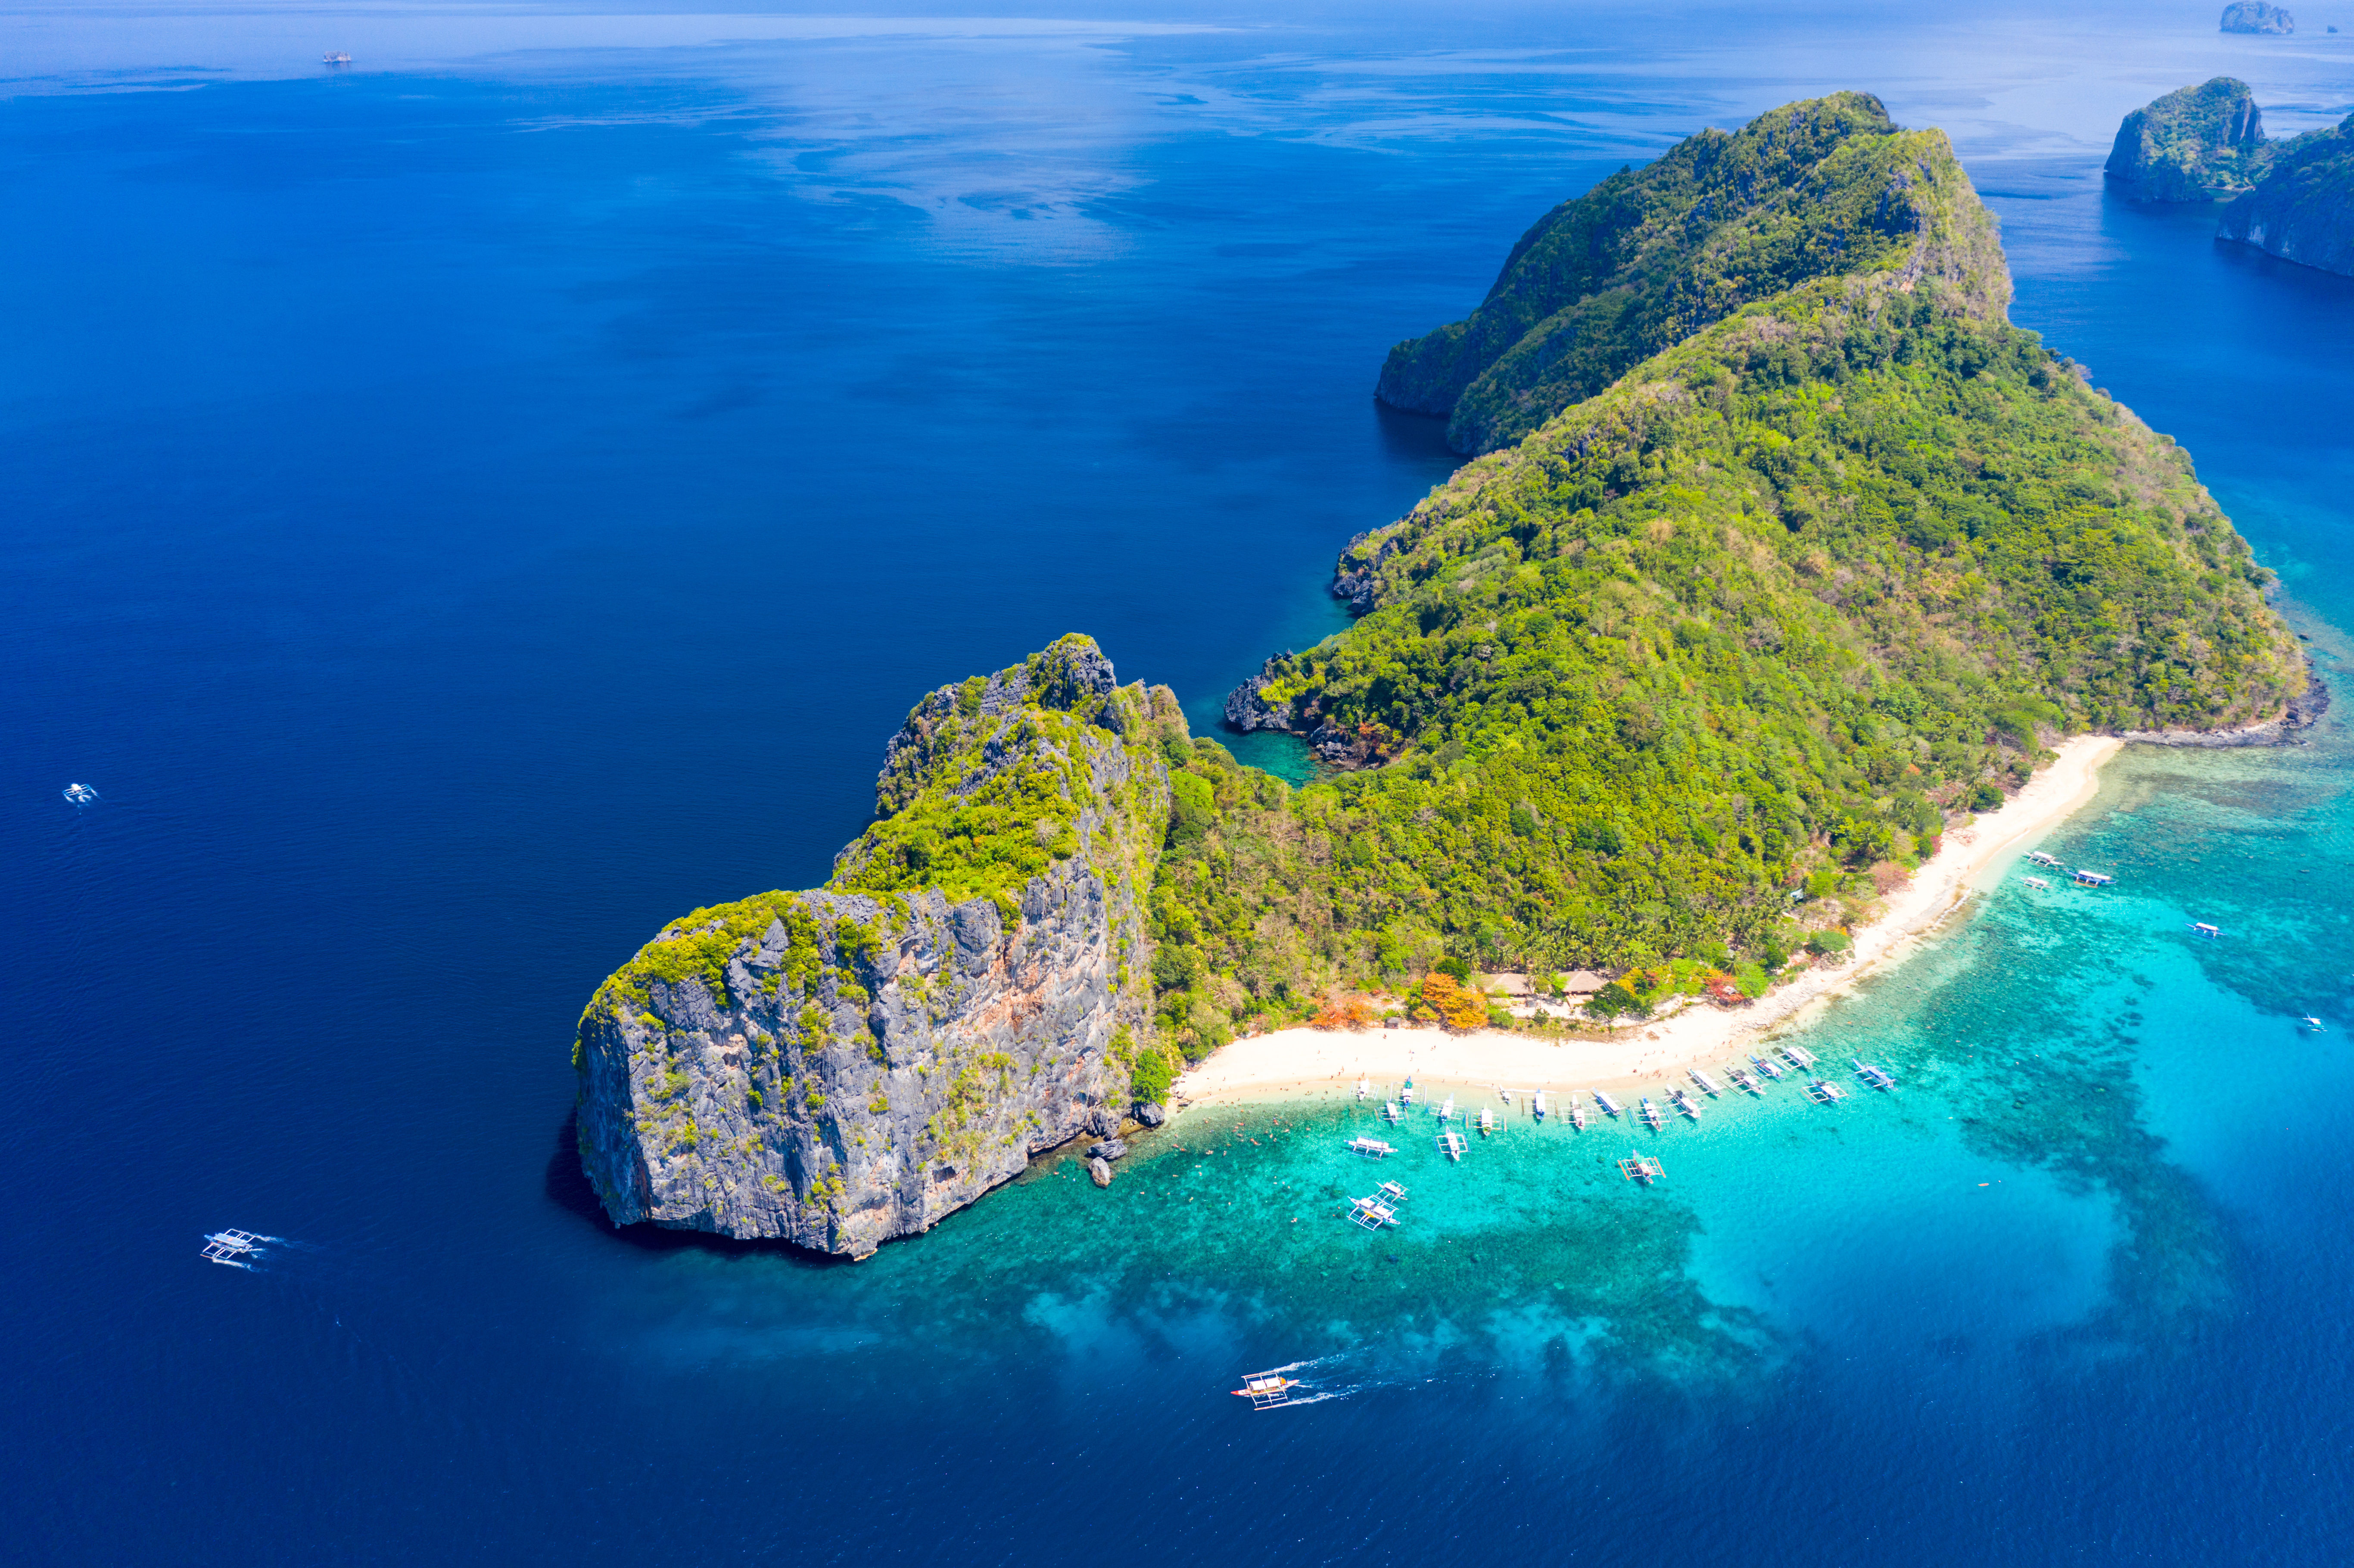 Aerial drone view of a tropical white sand island in El Nido, Palawan, Philippines with limestone cliffs and shallow reefs.